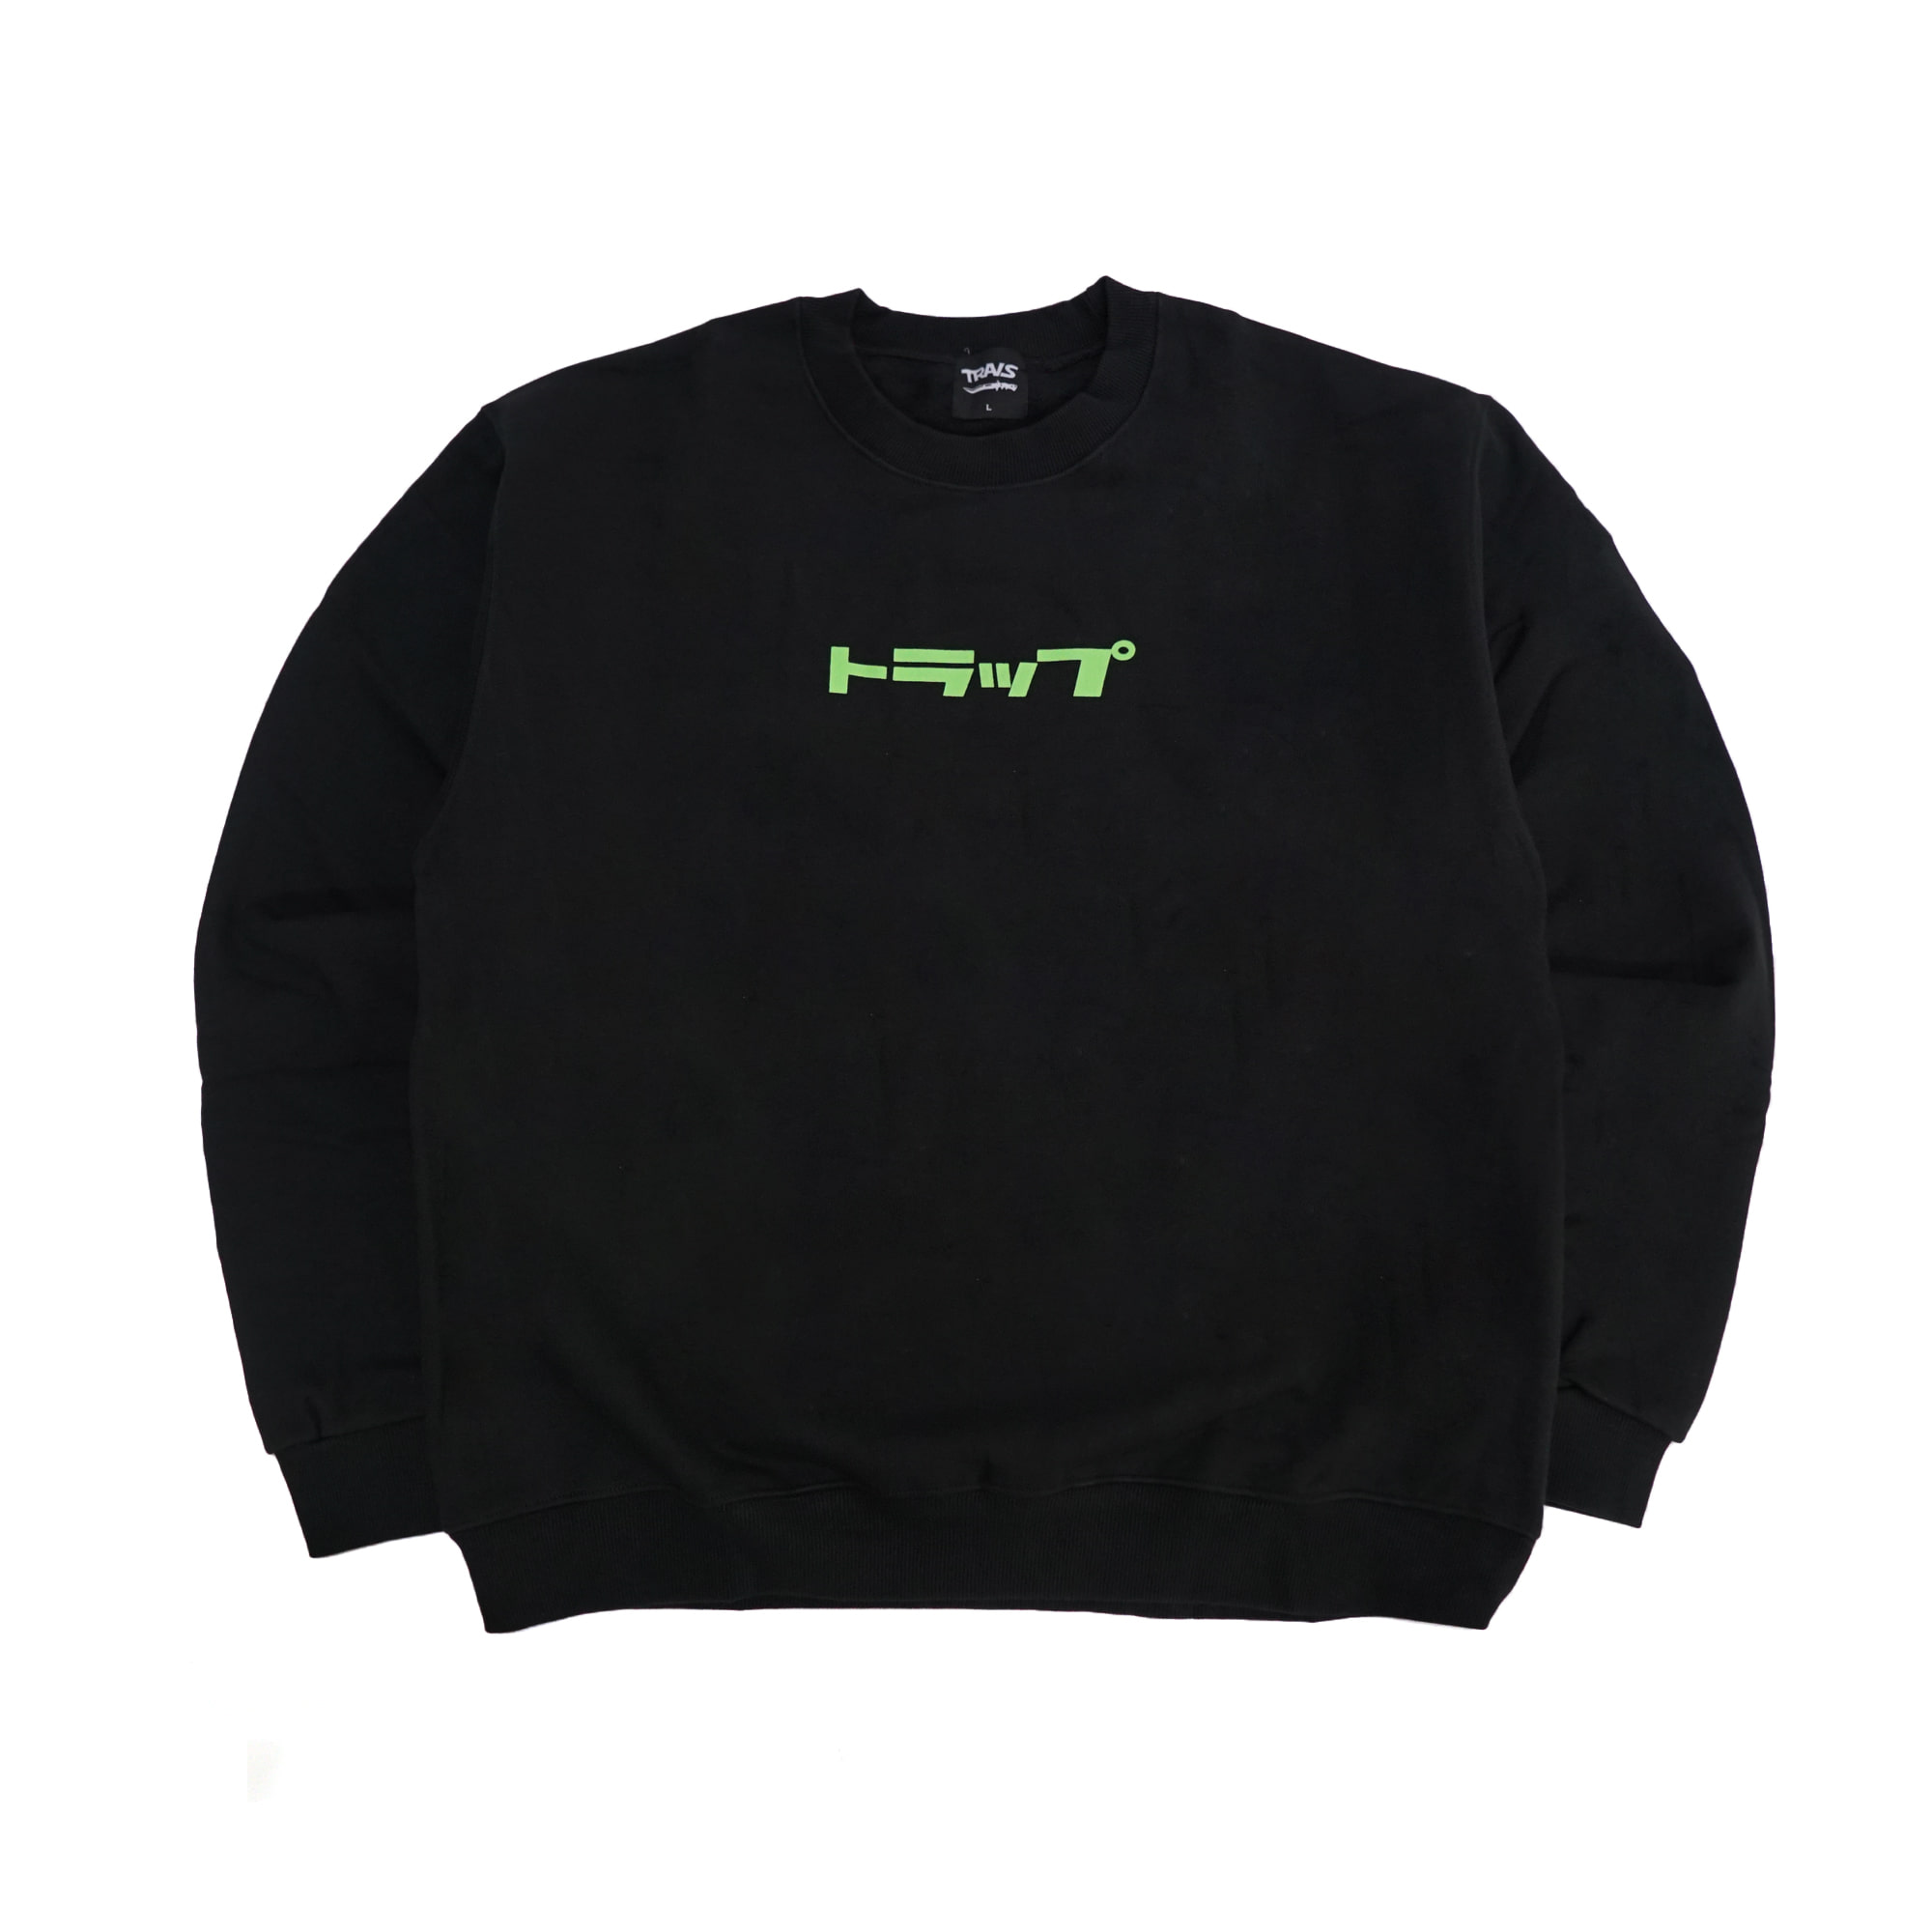 [TRAVS] トラップ TRAP CREWNECK SWEATSHIRTS - BLACK / NEON GREEN